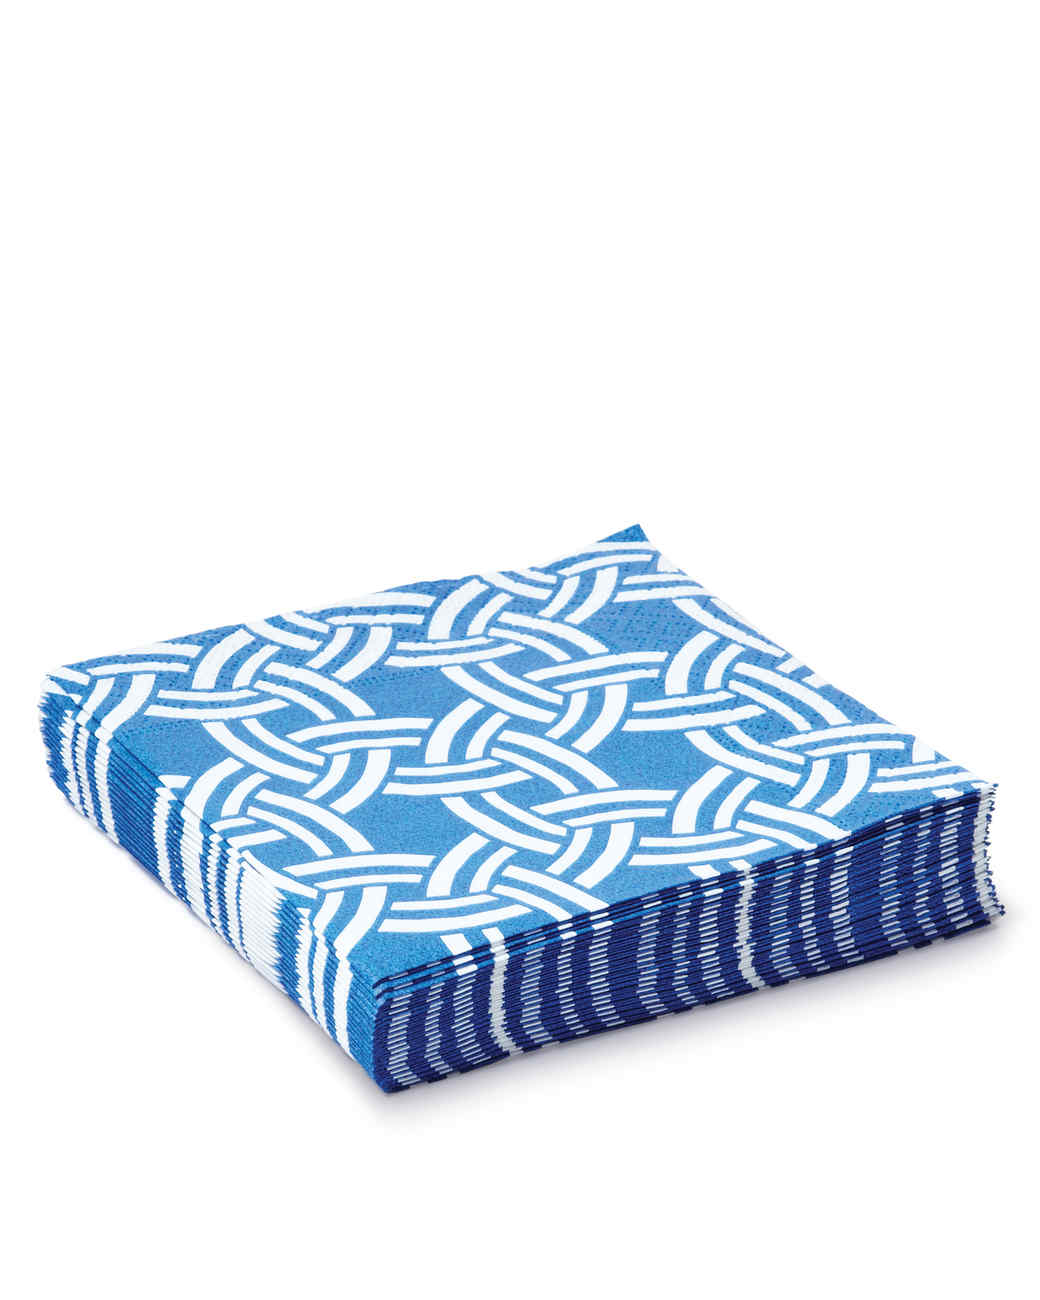 cocktail-napkins-0811mld107420.jpg